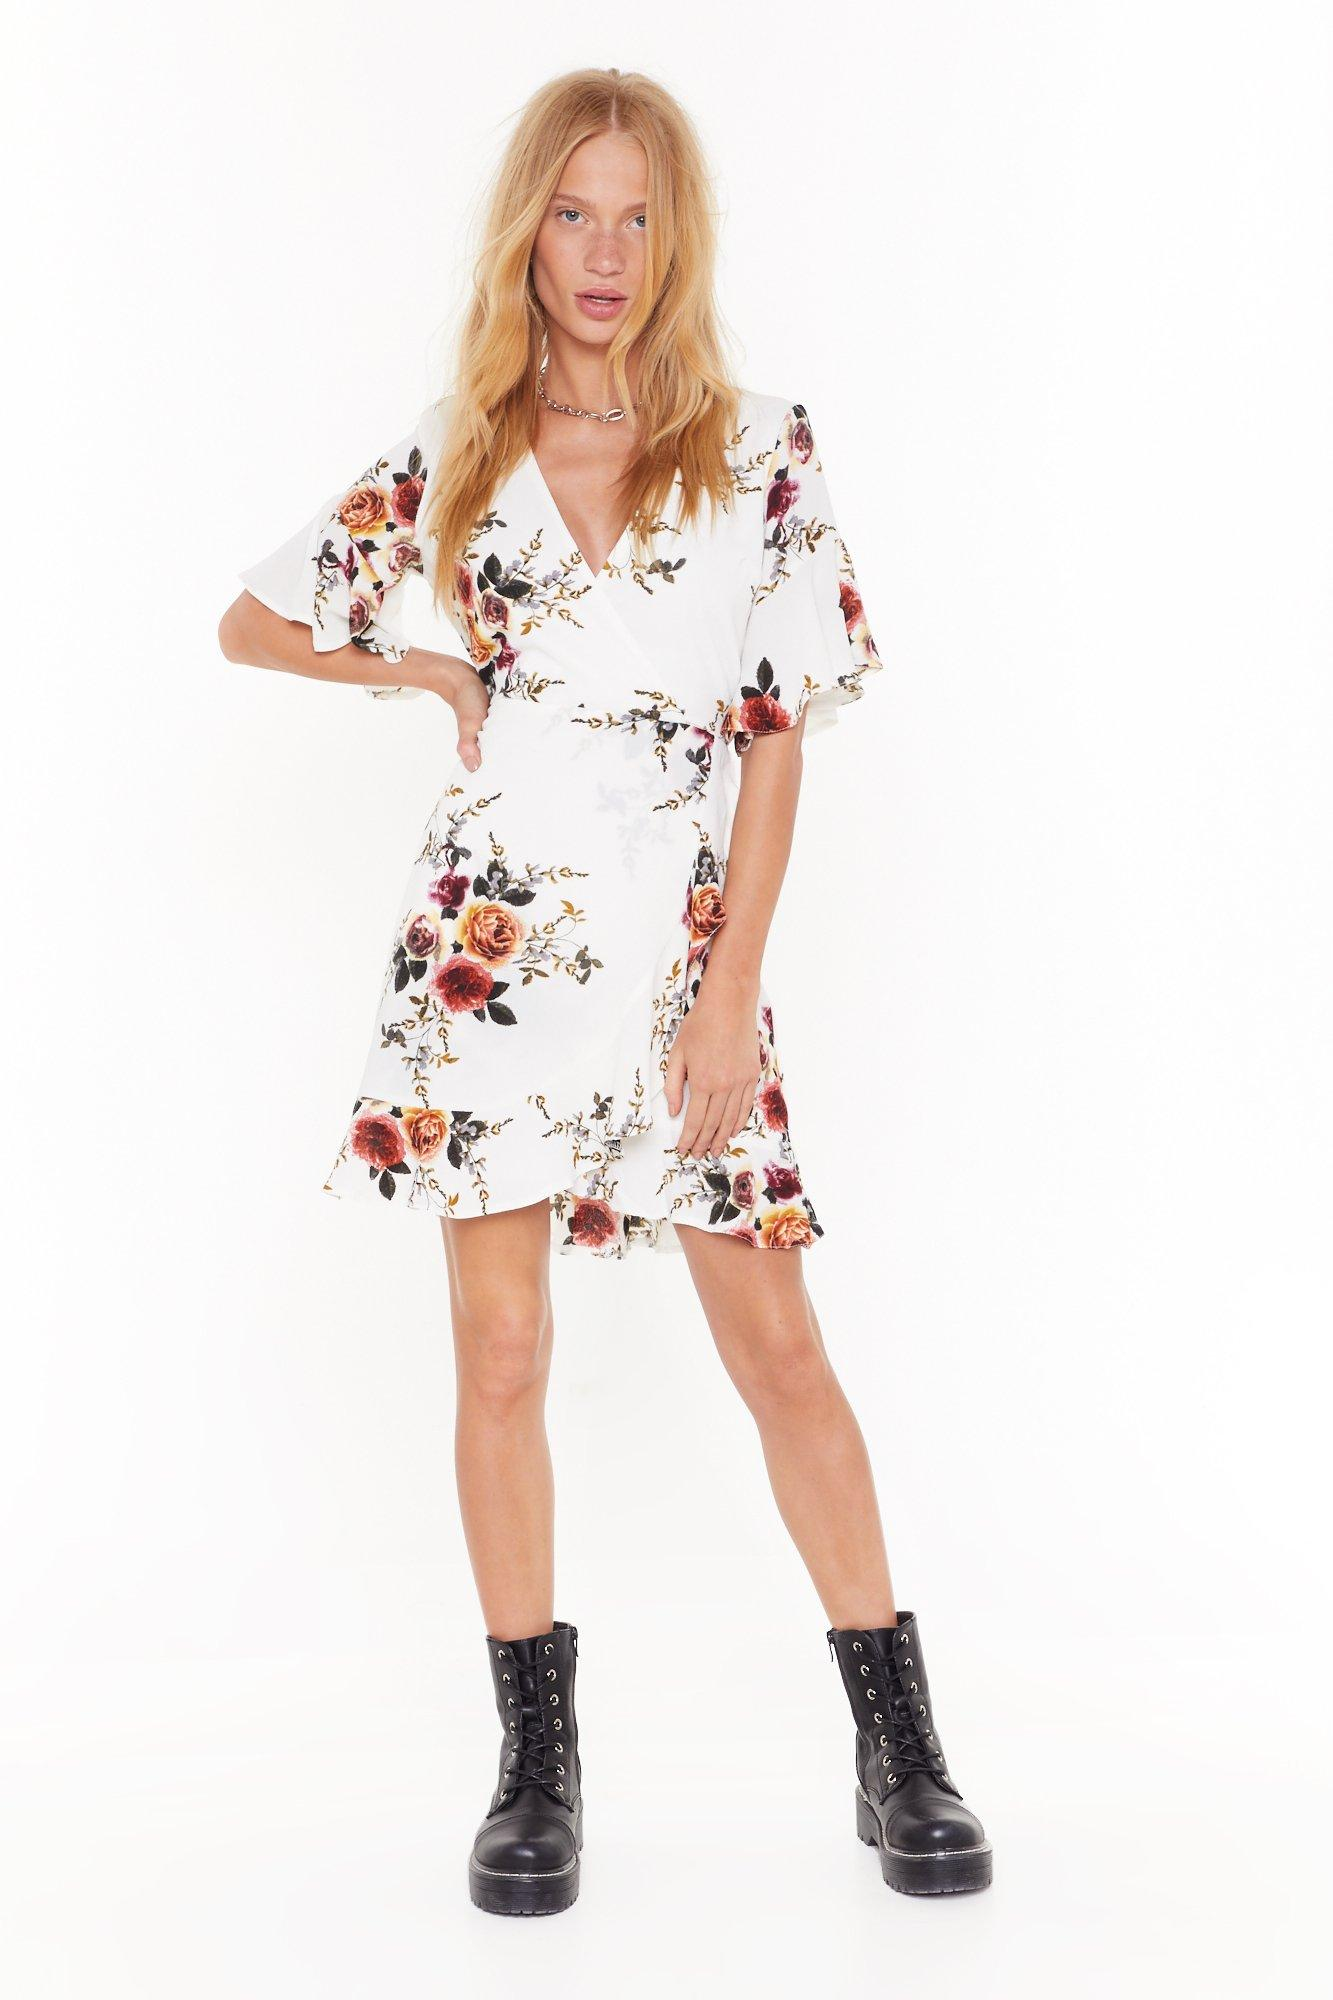 Flower Grown Wild Floral  Dress   Shop Clothes at Nasty Gal!